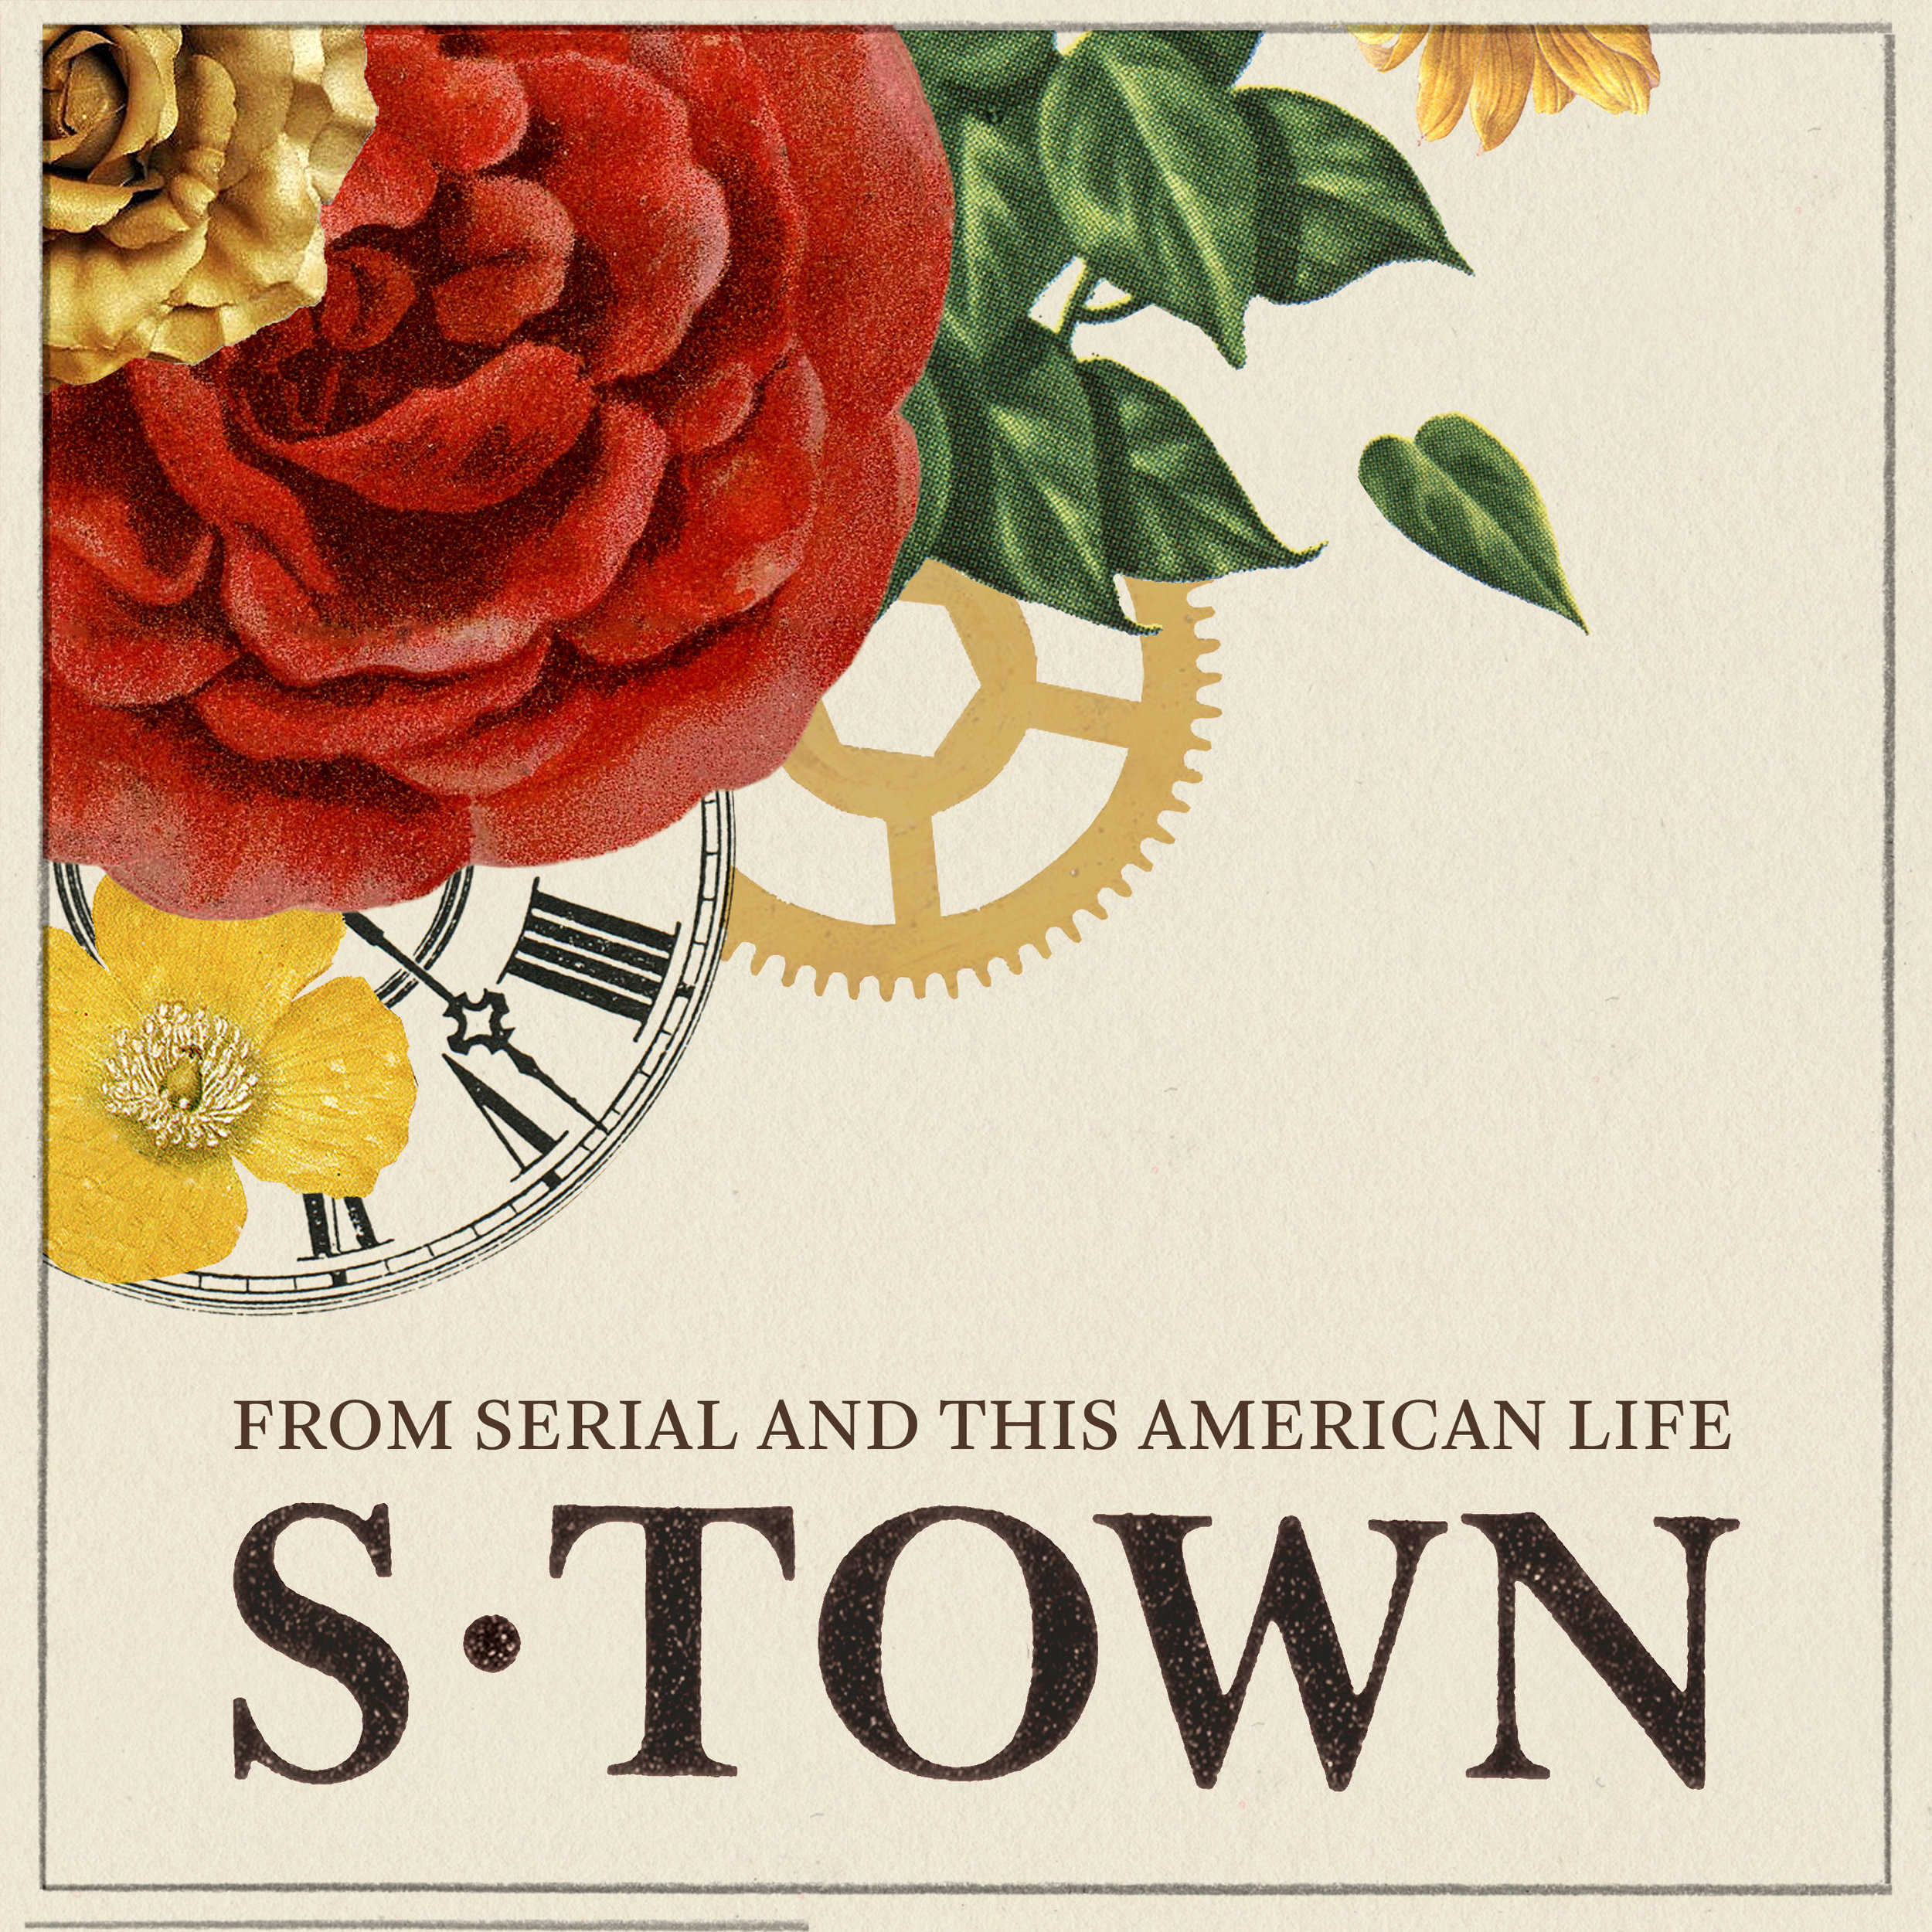 S-Town, by Brian Reed, Serial, and This American Life.